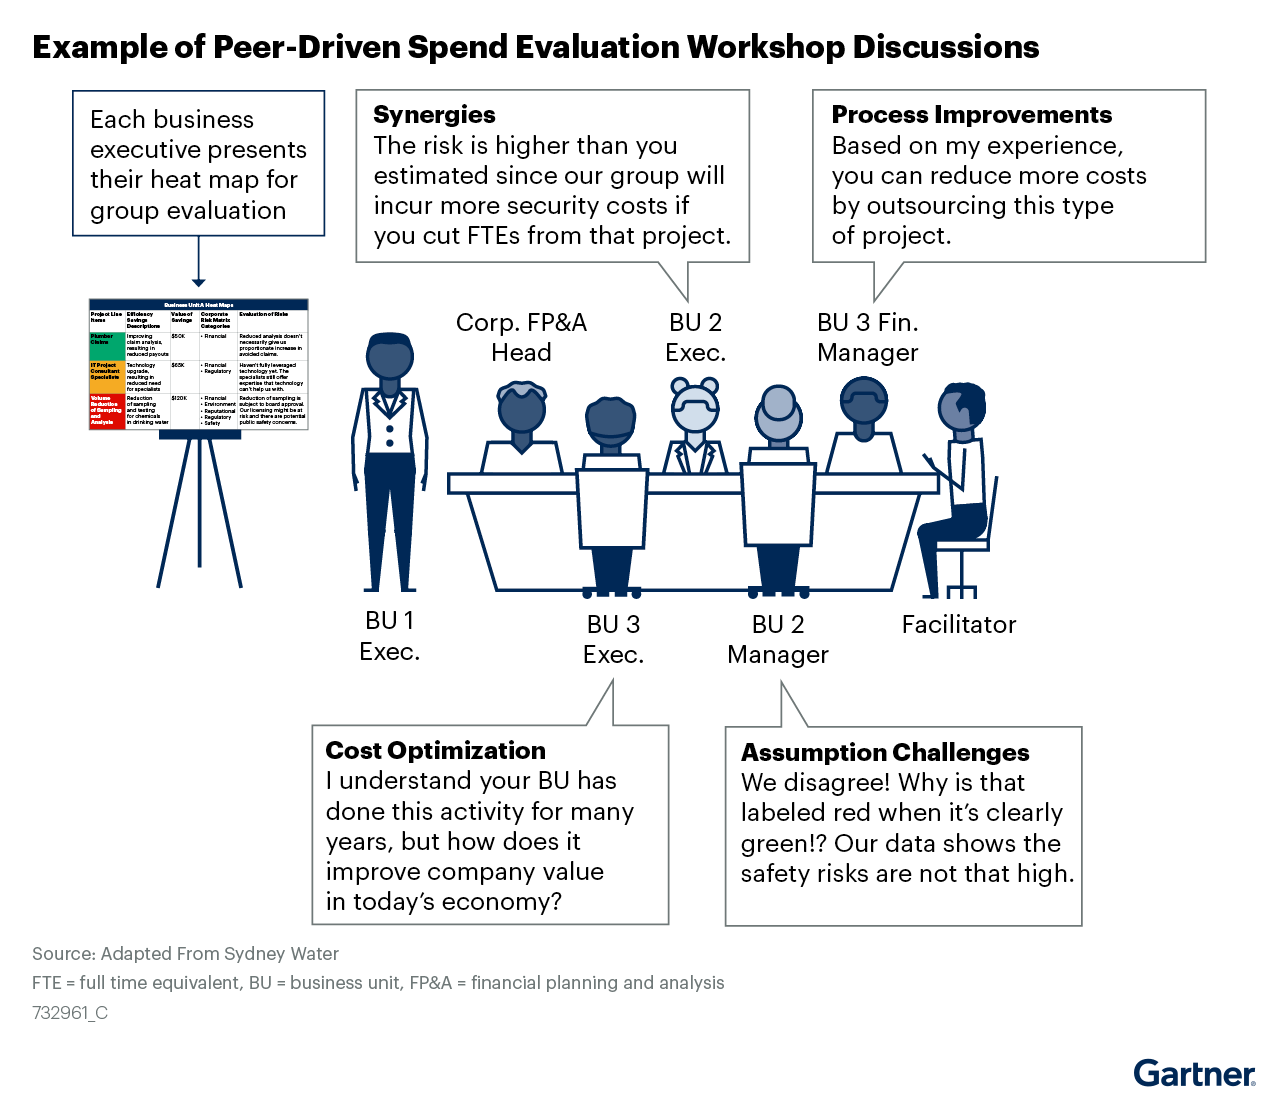 Figure 3. Example of Peer-Driven Spend Evaluation Workshop Discussions